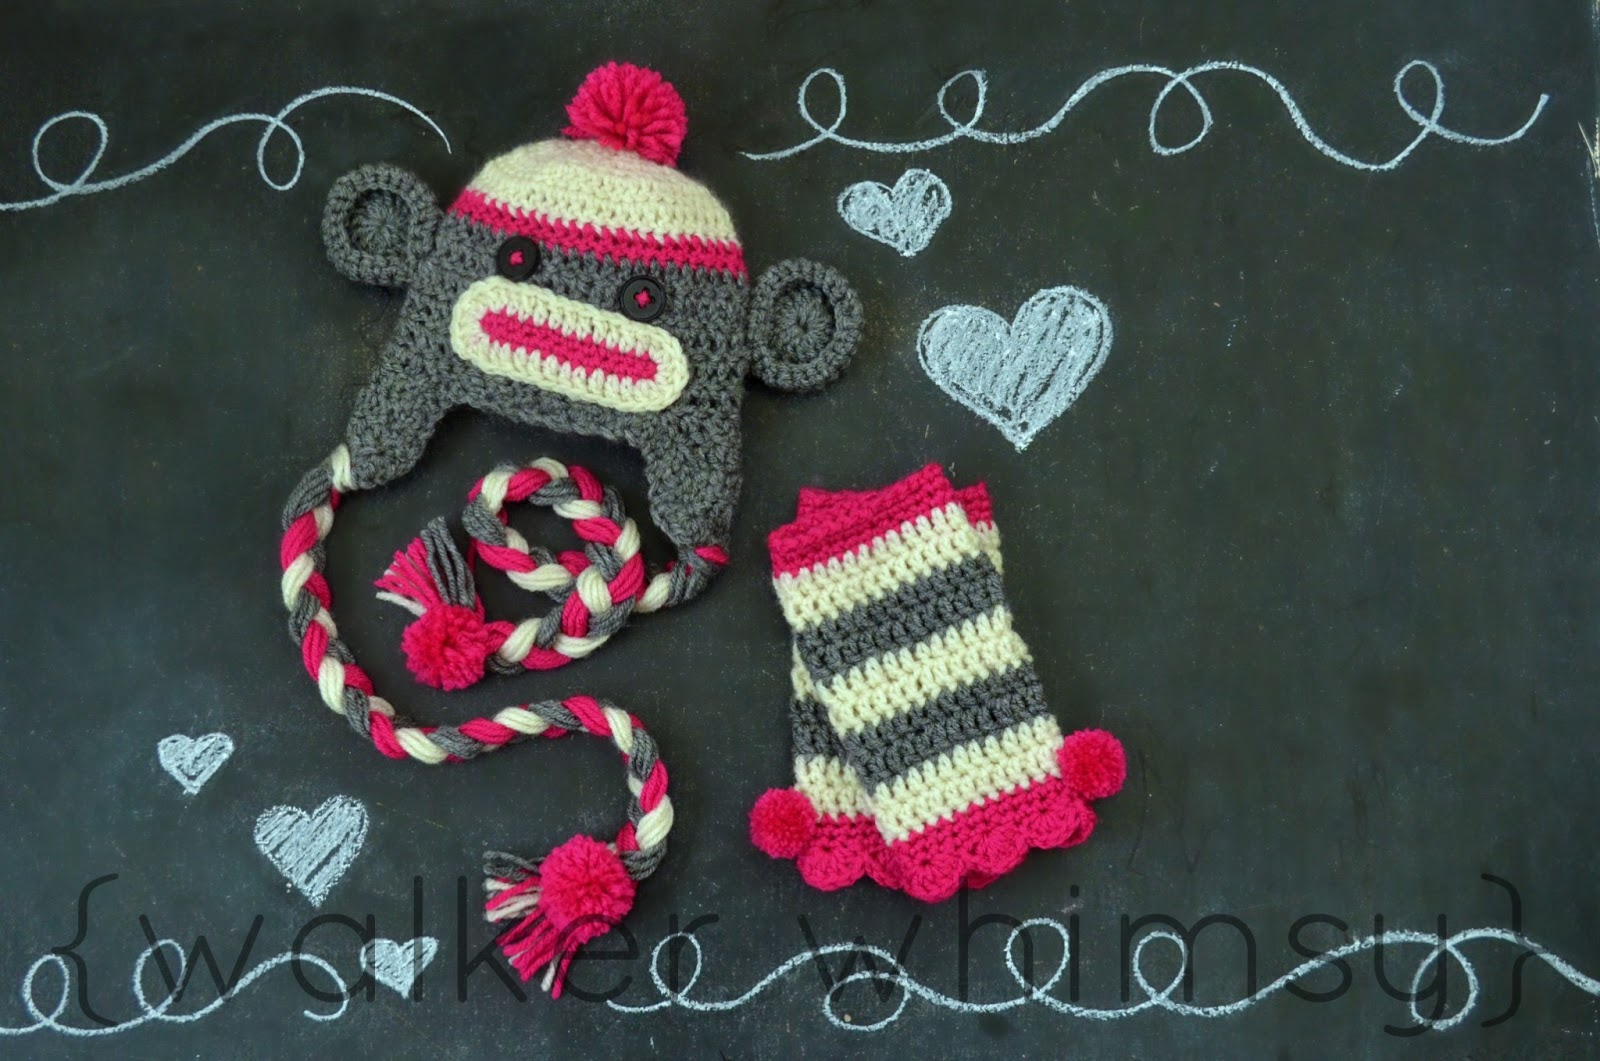 walker whimsy   Sock Monkey Hat   Leggings  14 Days of Fluffy Stuff  ff8d92802835